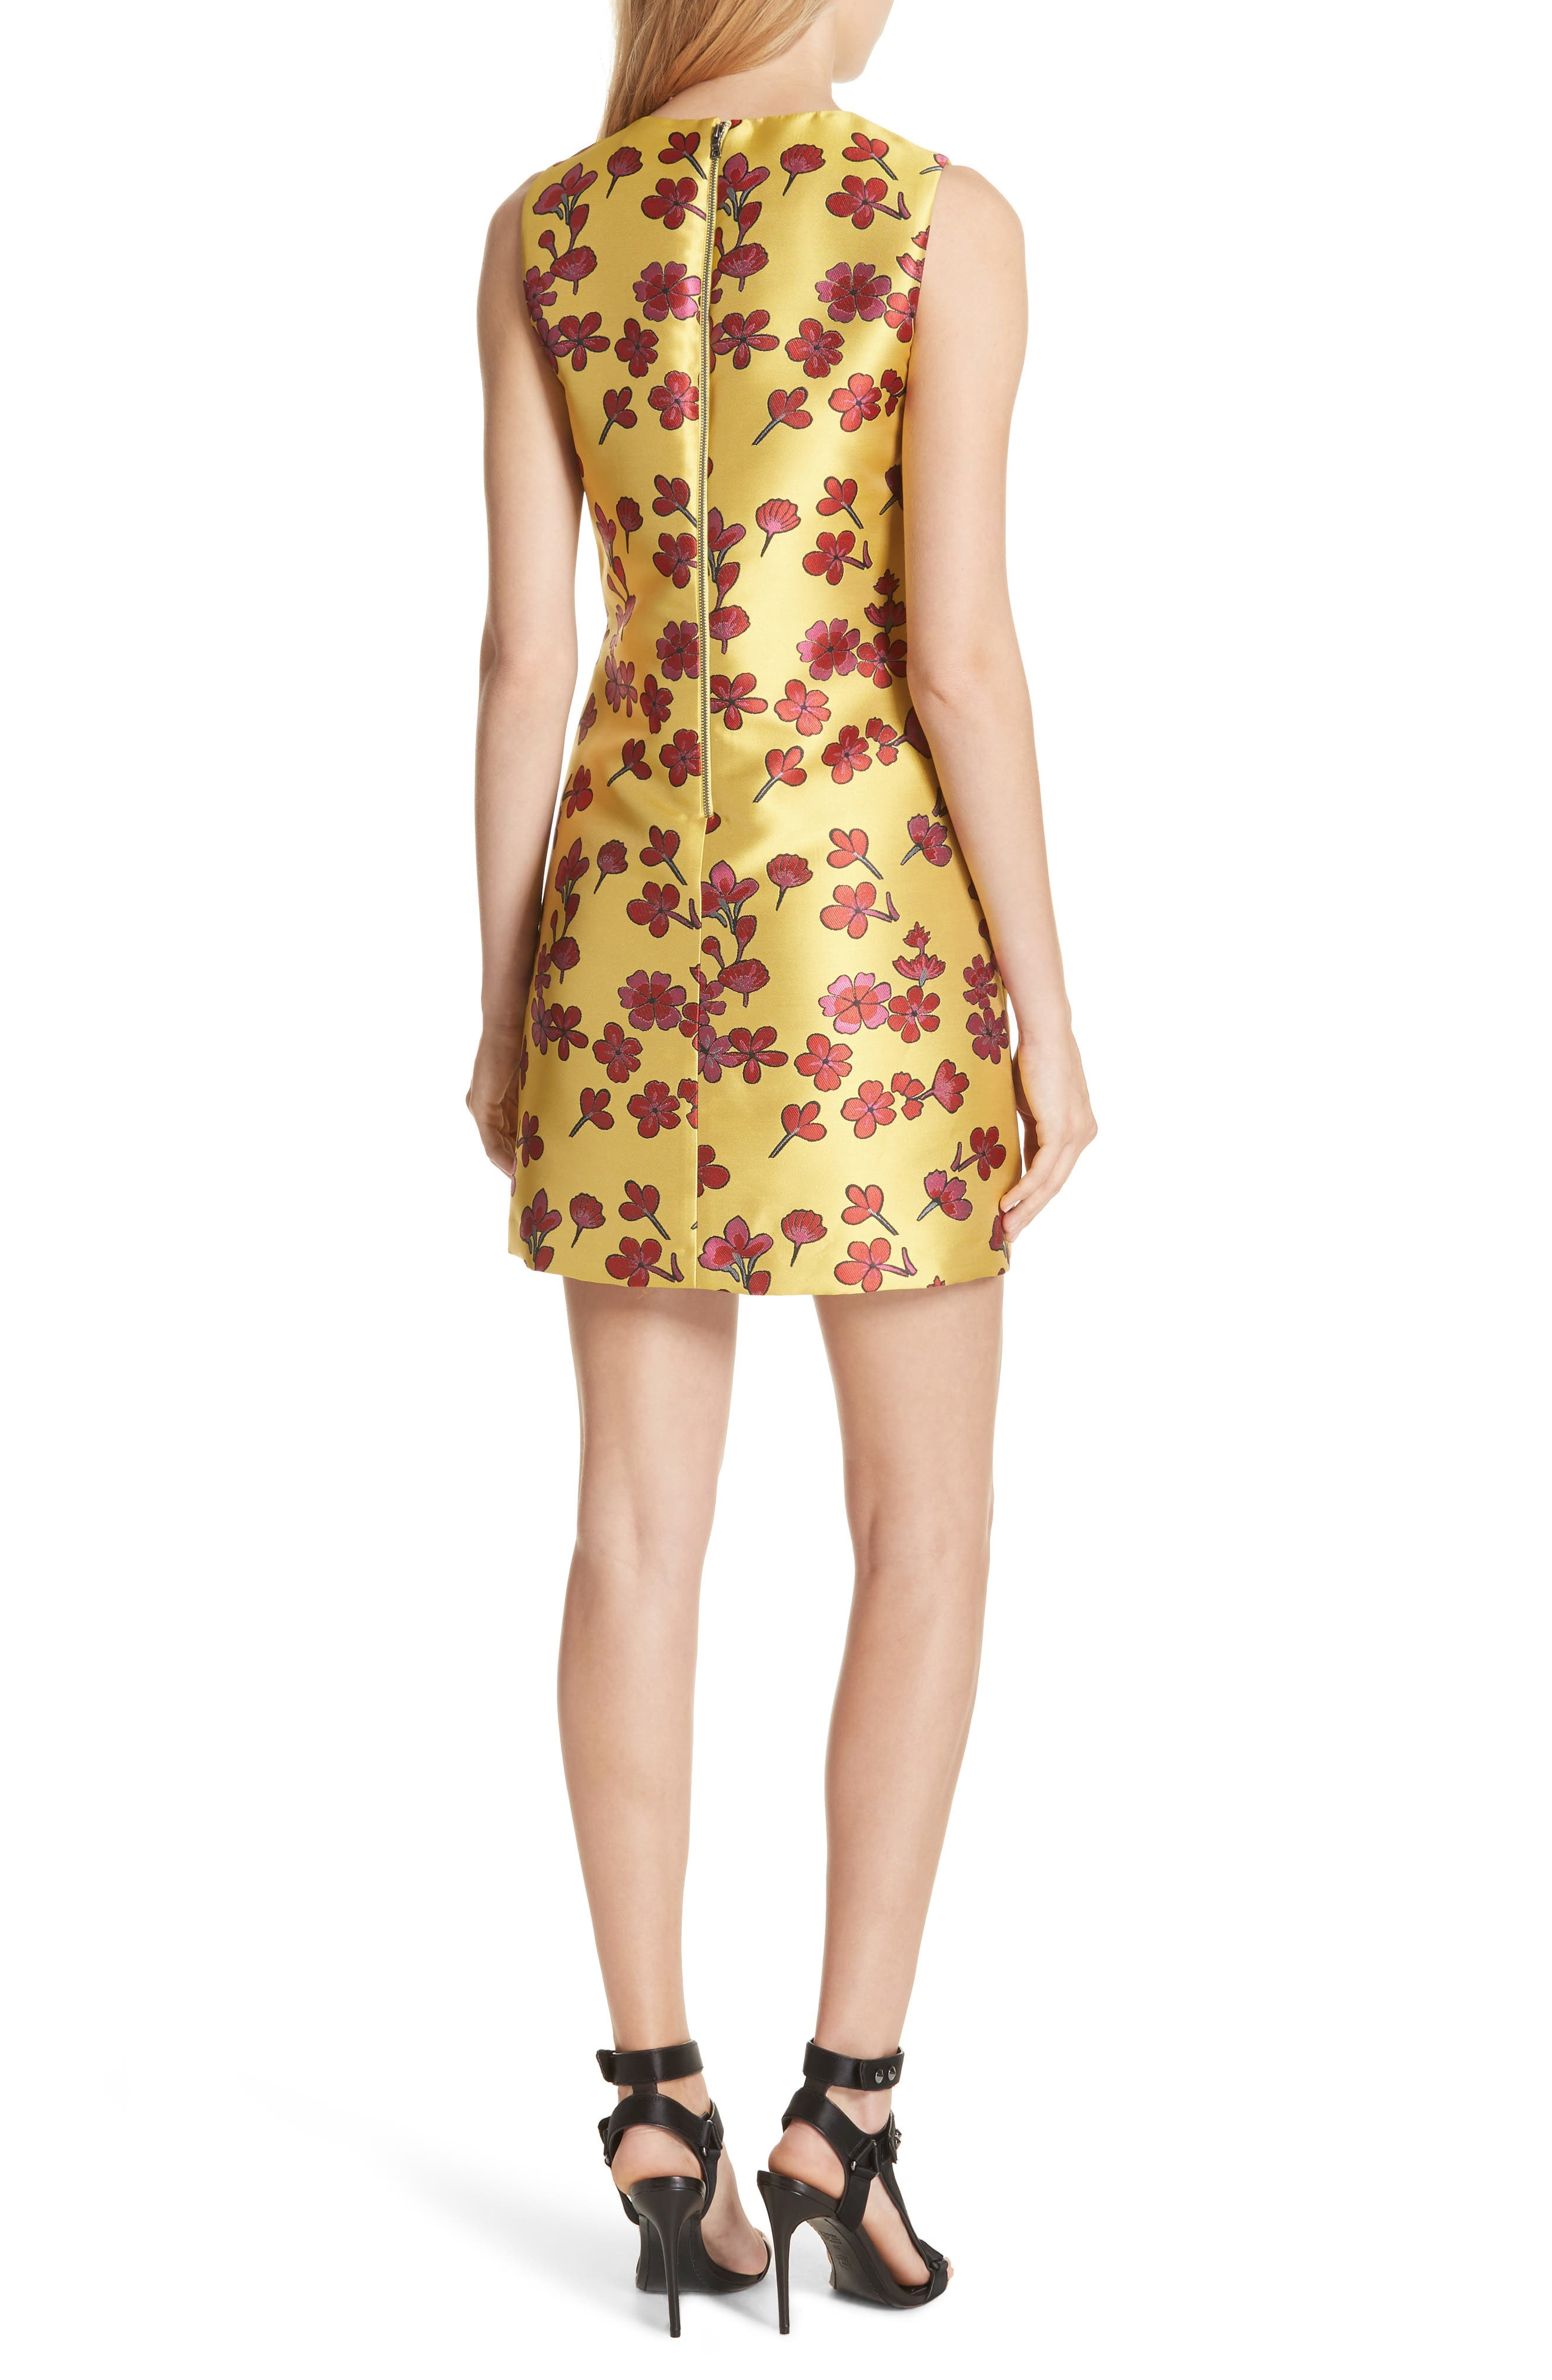 Coley Floral A-Line Shift Dress,                             Alternate thumbnail 2, color,                             Sunflower/ Poppy